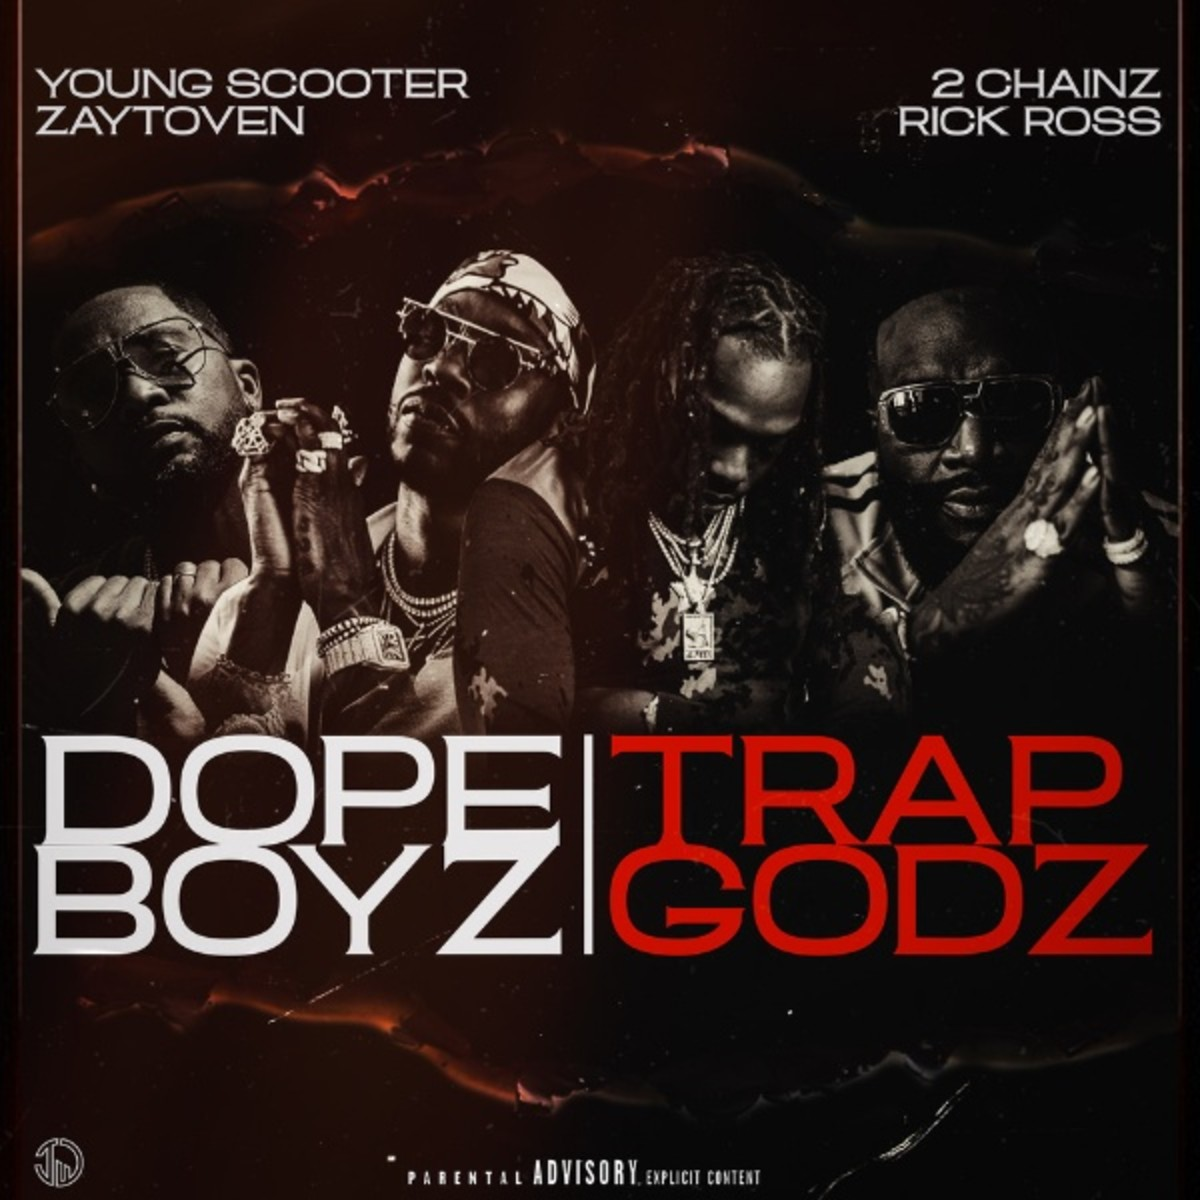 """Premiere: Zaytoven and Young Scooter Drop """"Dope Boyz & Trap Godz"""" f/ 2 Chainz and Rick Ross"""